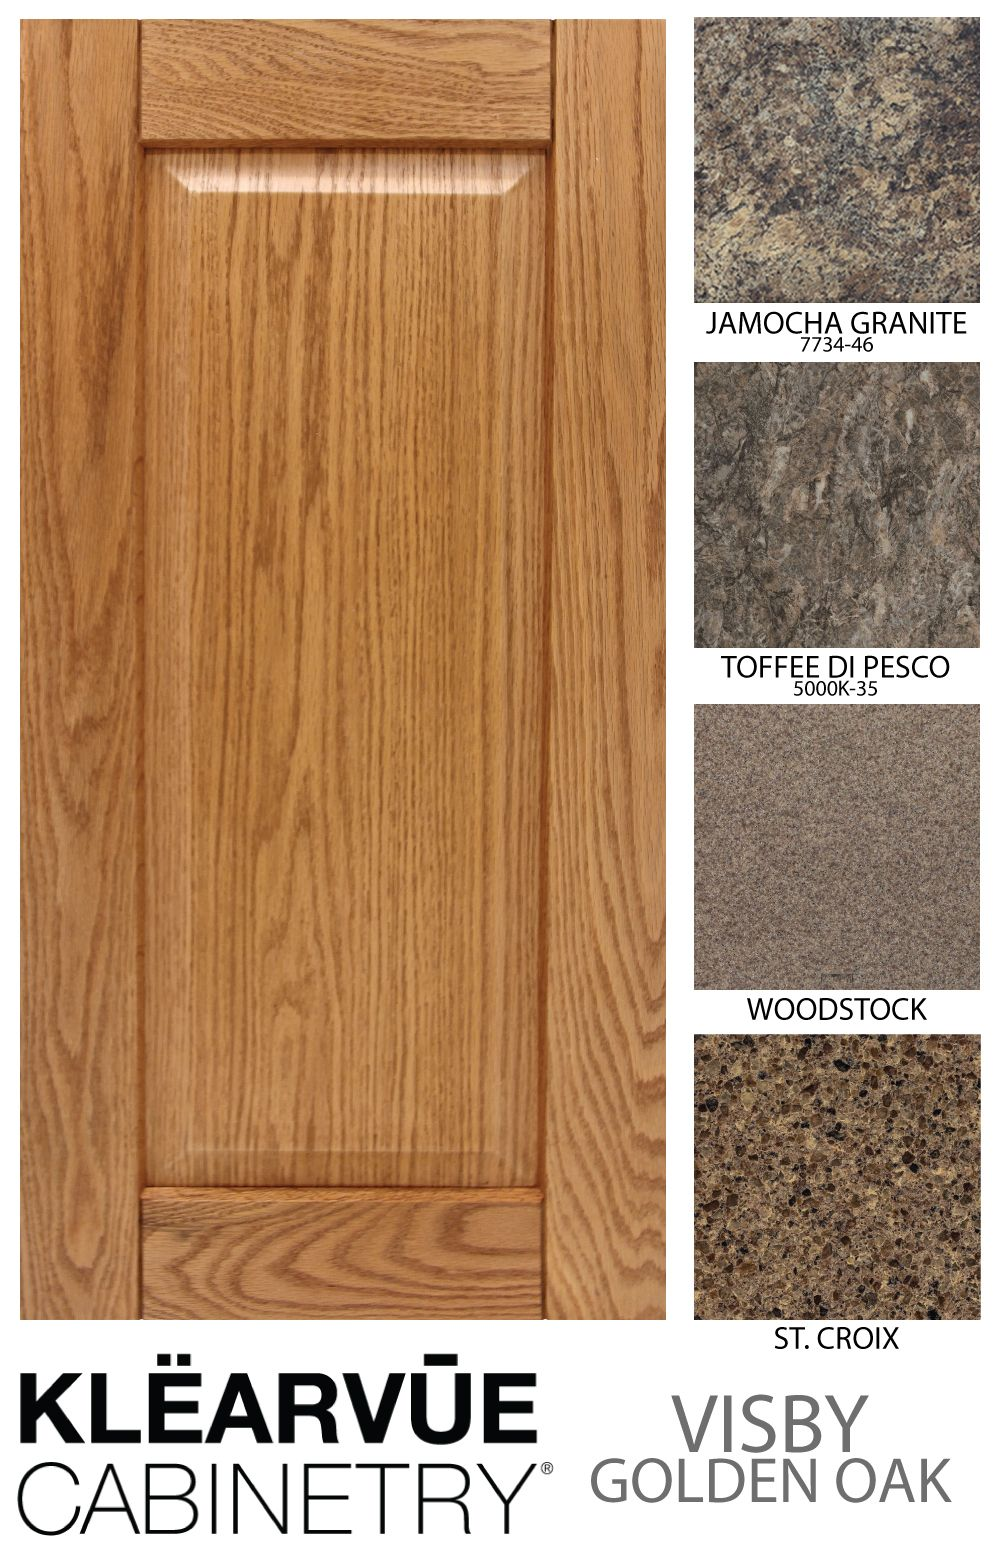 Midwest Manufacturing Has Countertops To Match Any Cabinets. Check Out Our  Matches To The Klearvue Cabinetry Visby Golden Oak Cabinets.